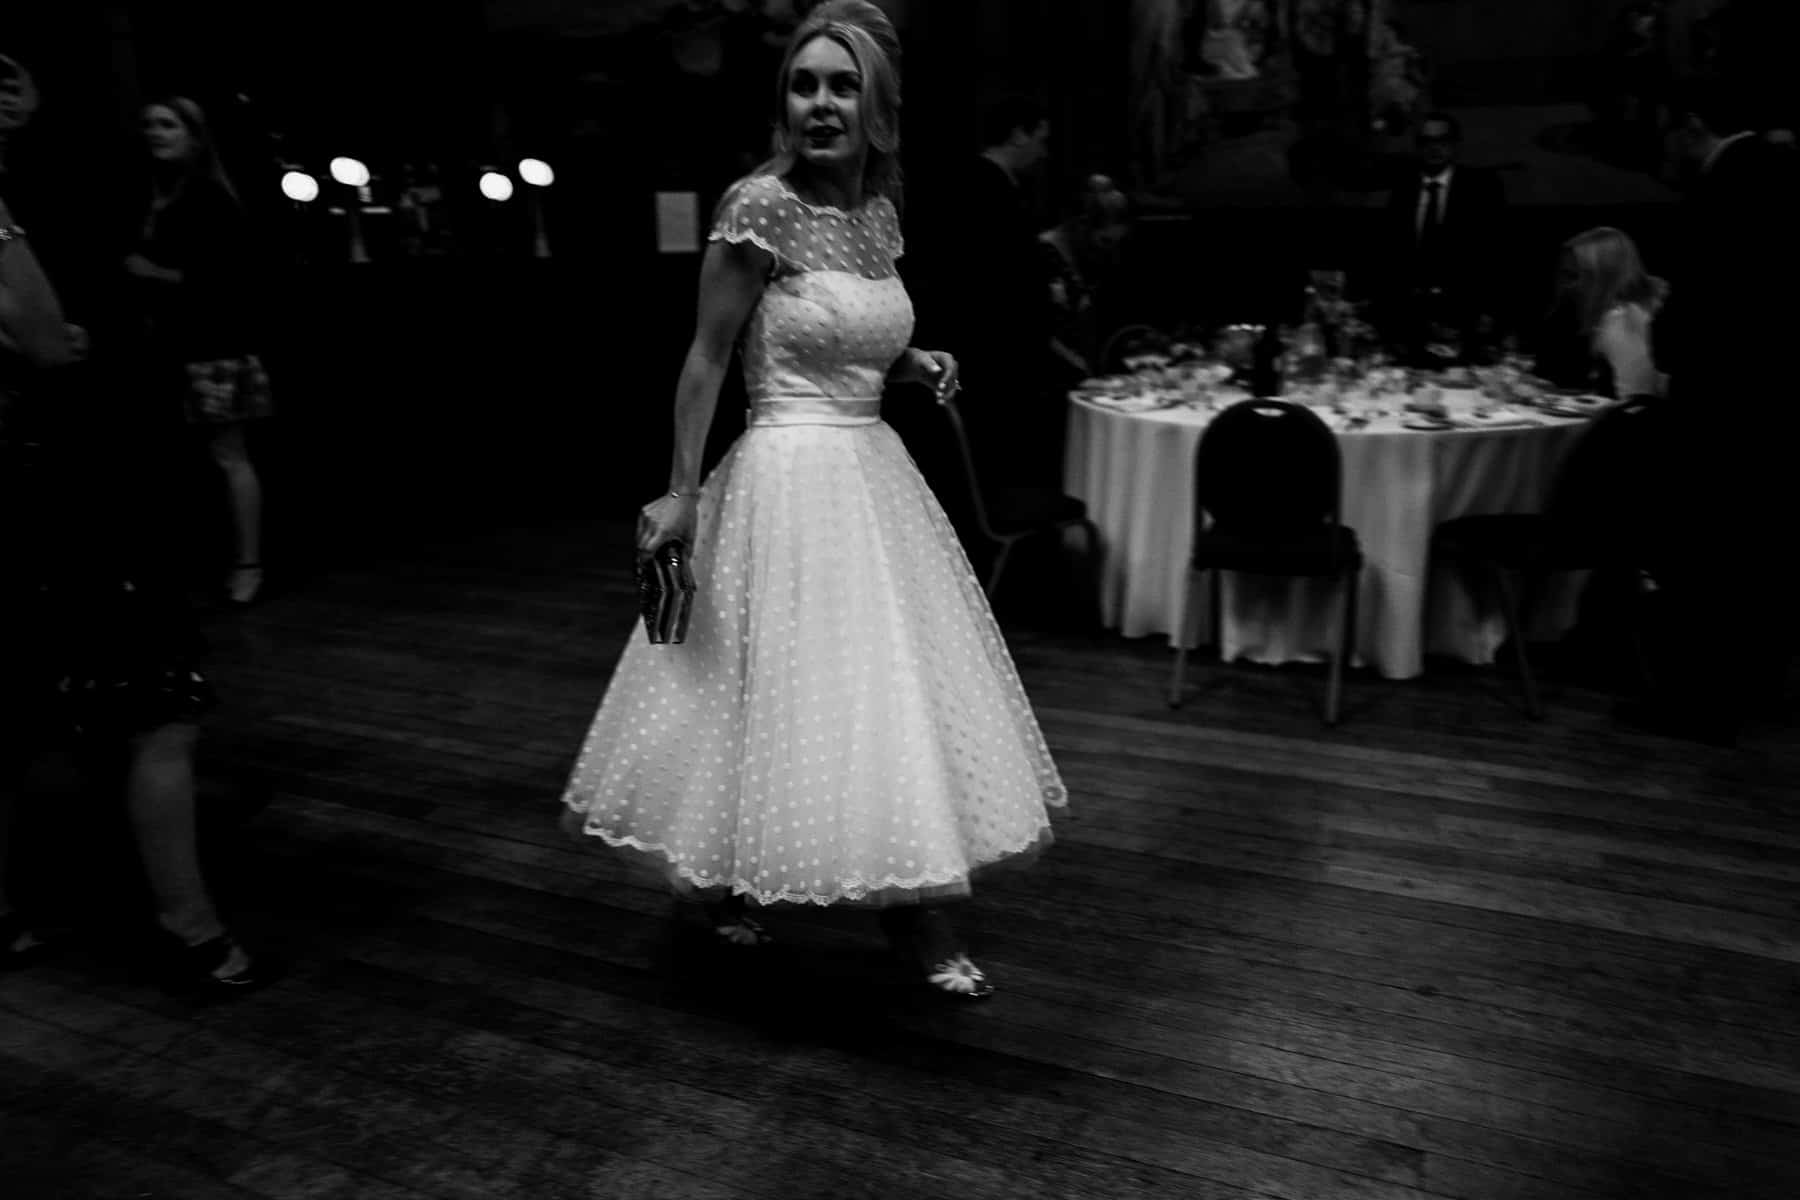 bride walking in black and white